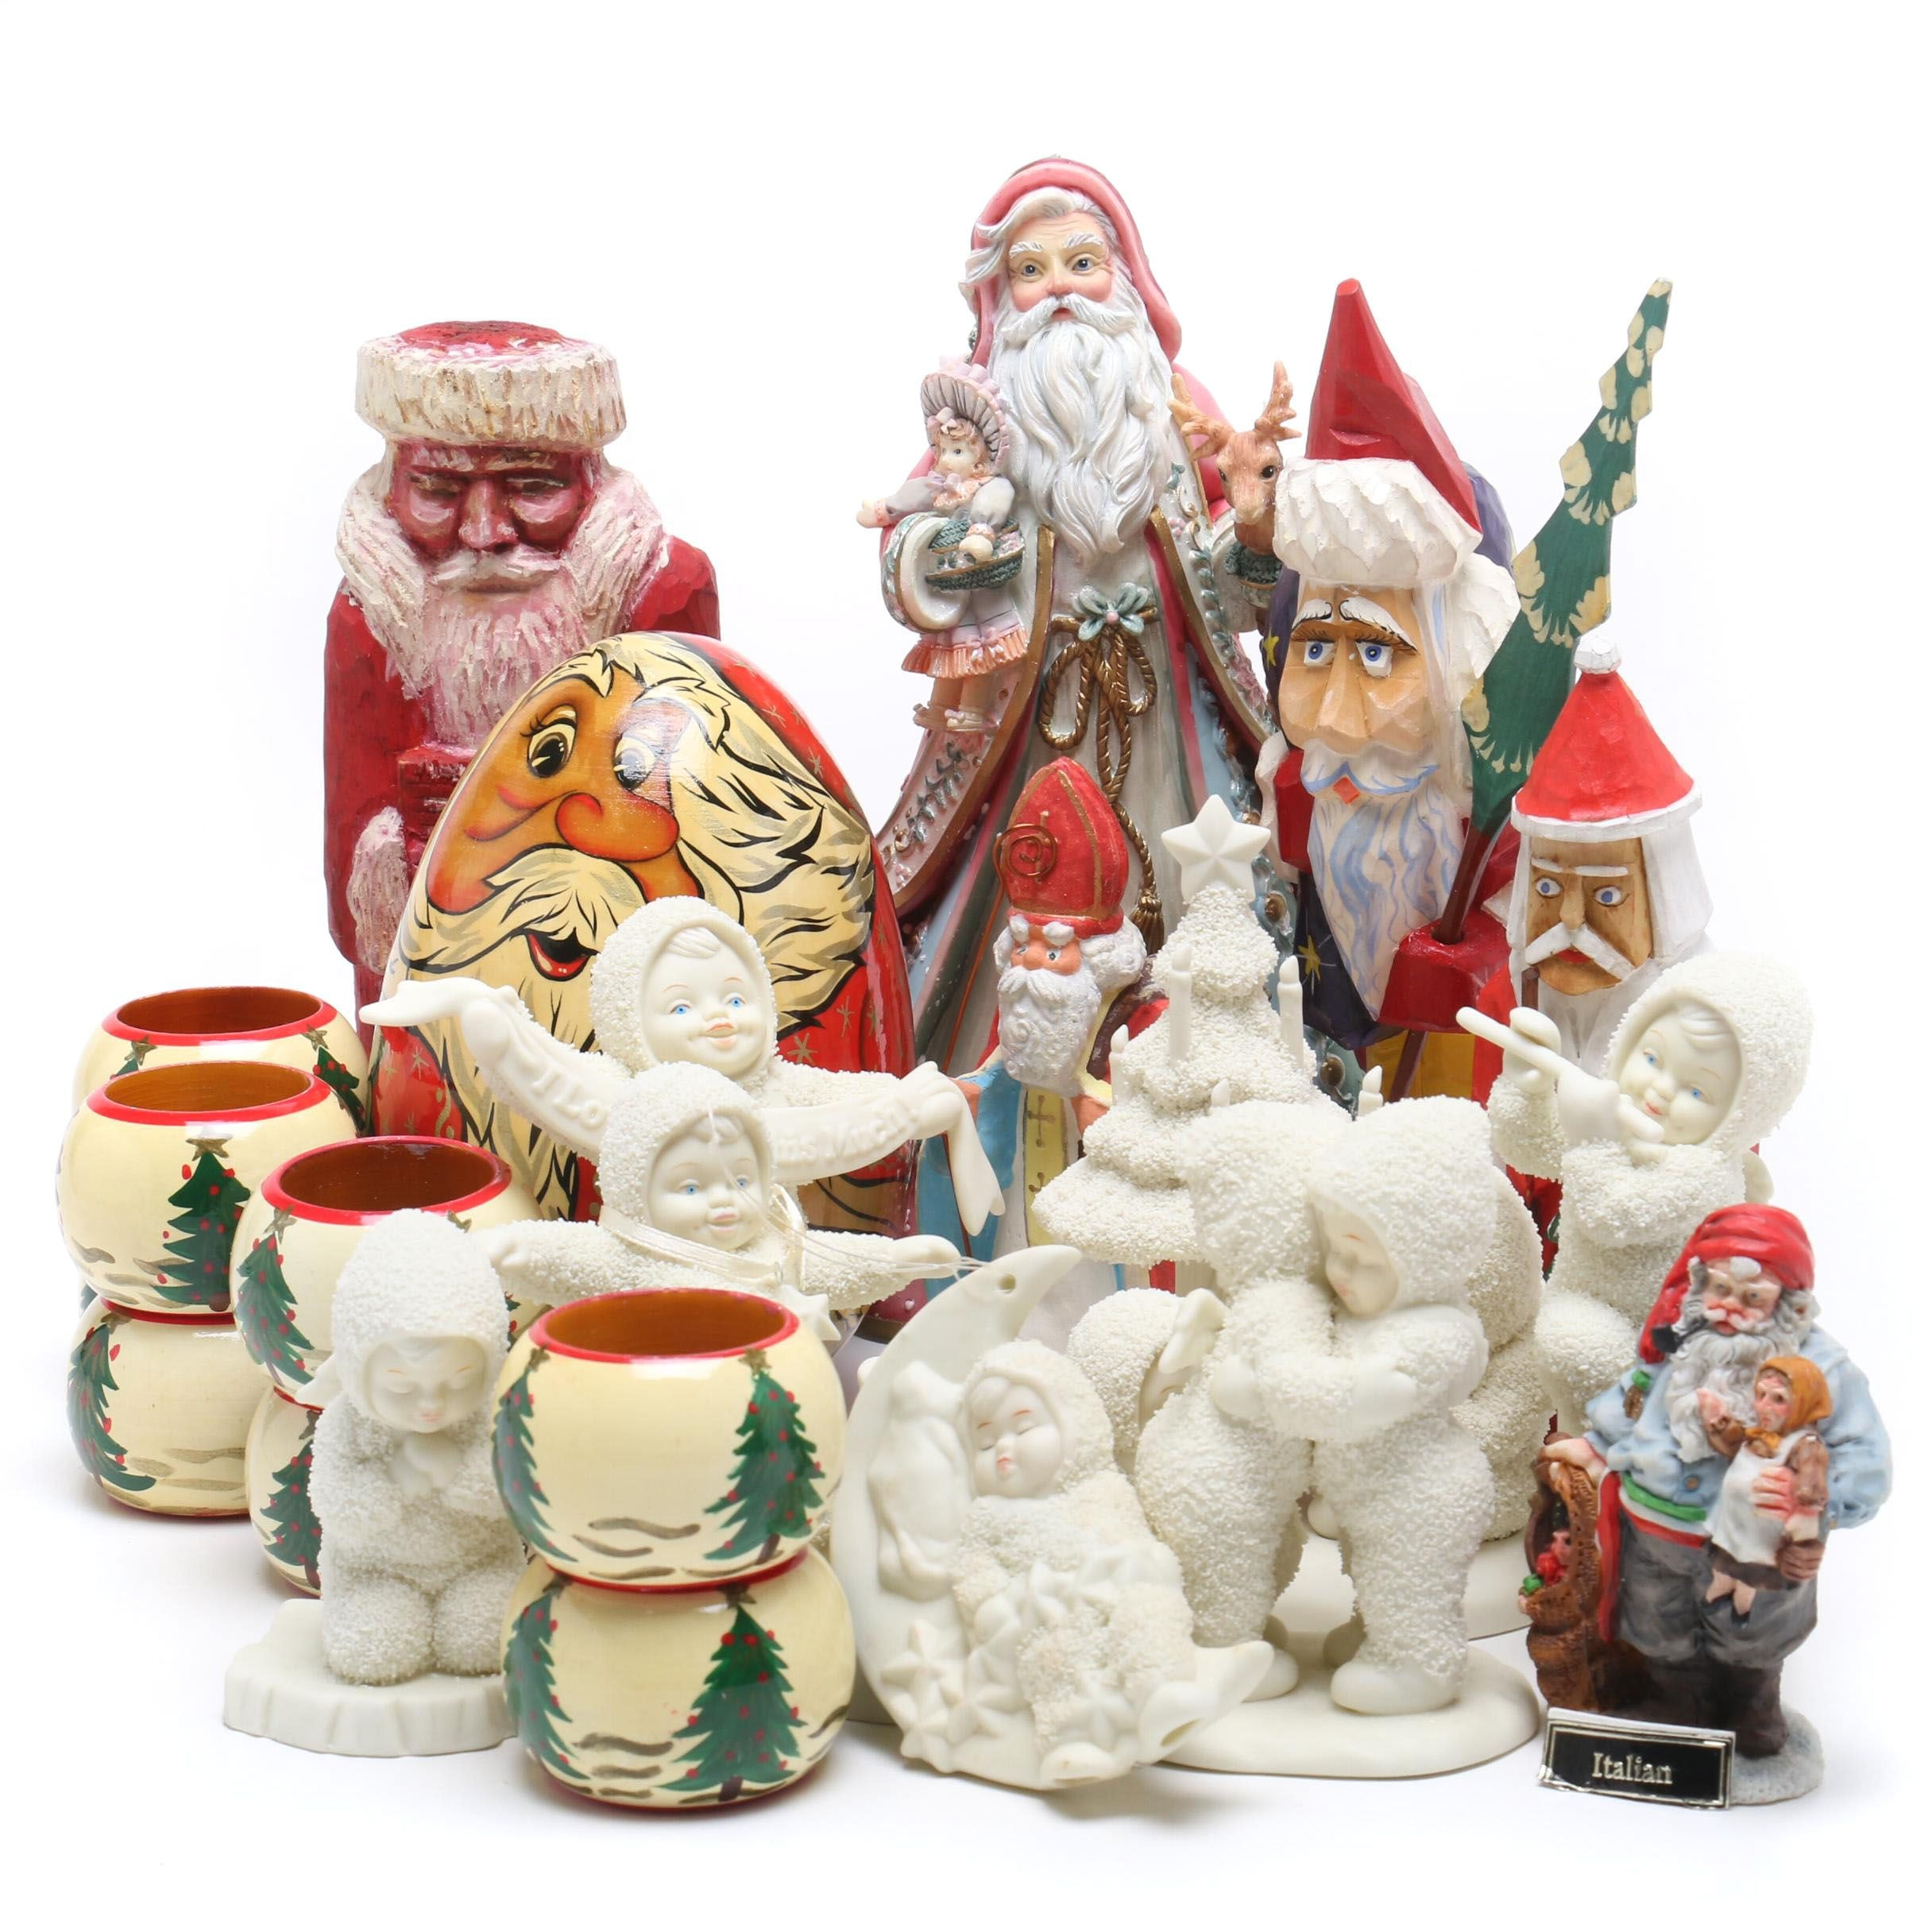 Santas and Department 56 Snowbabies